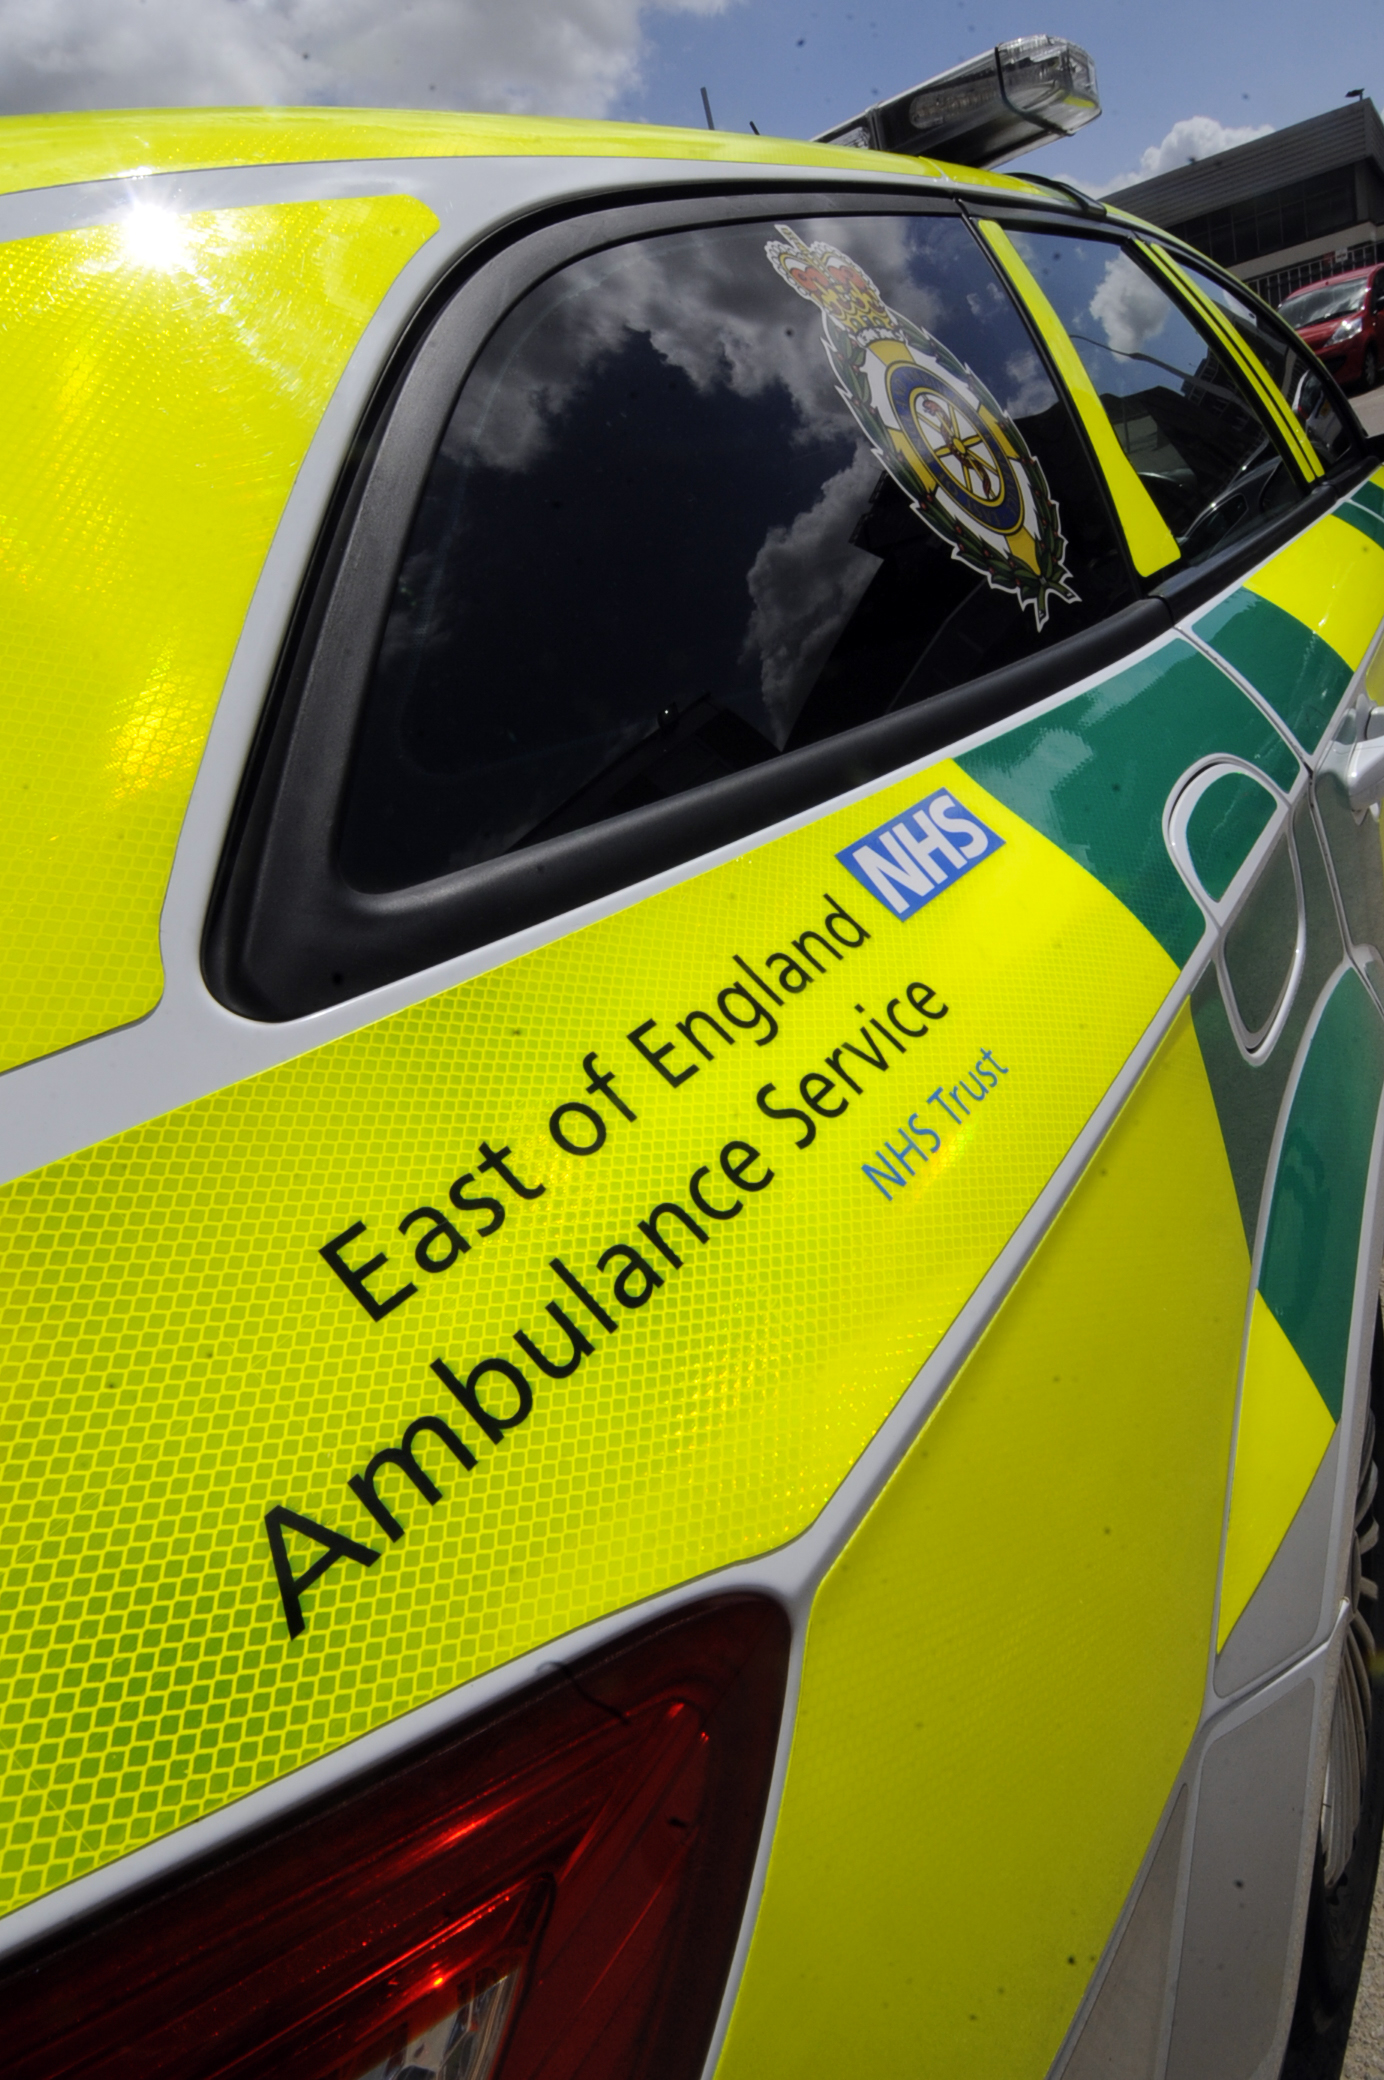 Increase in New Year ambulance 999 calls in Essex